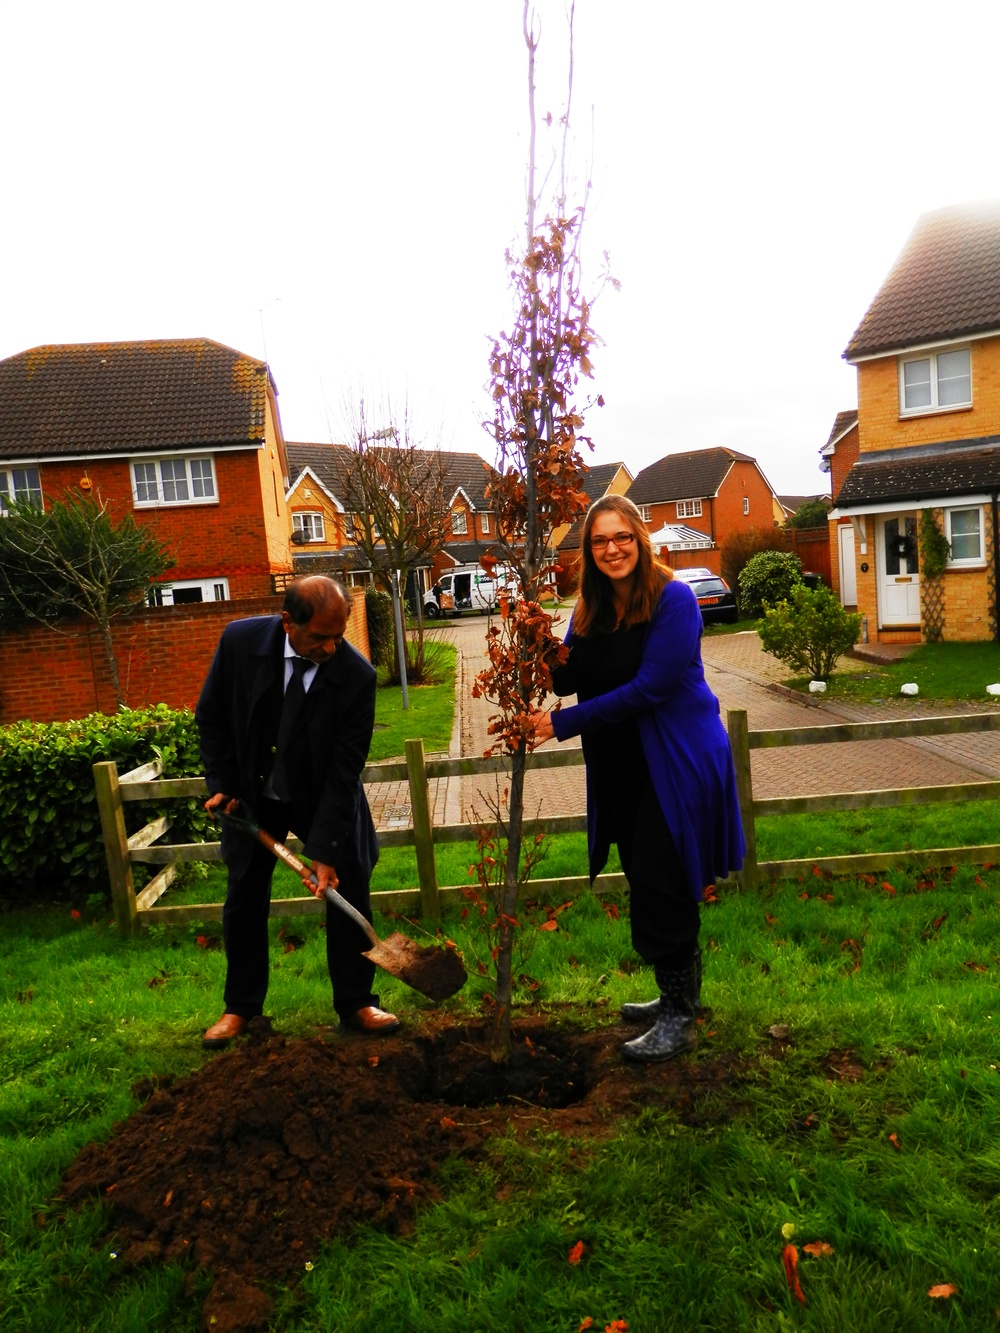 Cllr Parmar and Pantelic had the honour of planting the first of our 150 new trees